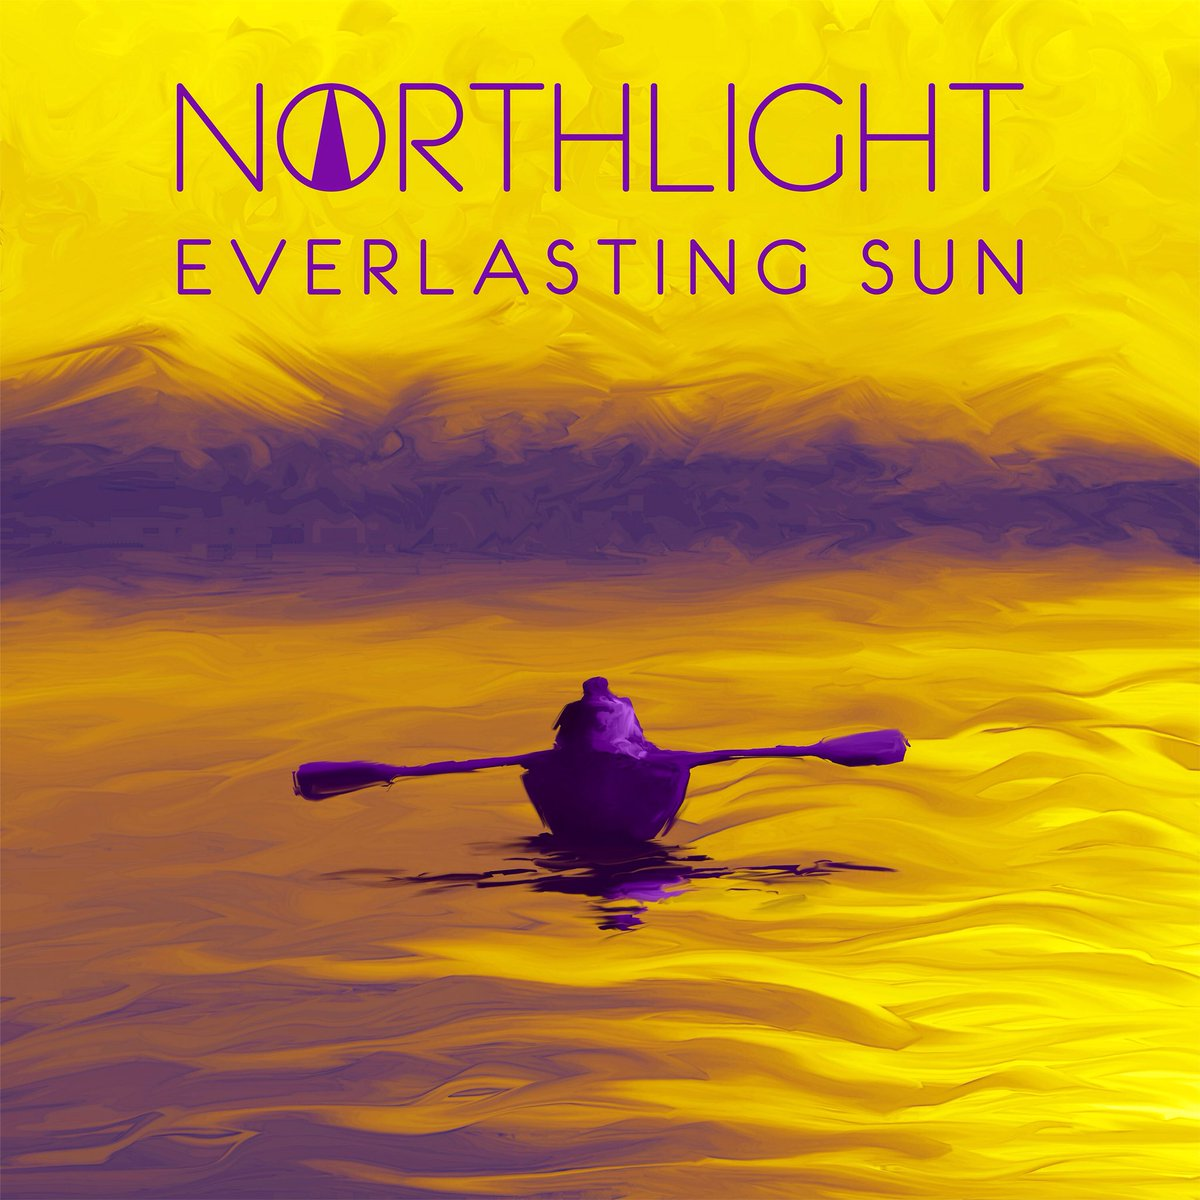 NEW SINGLE THIS FRIDAY Artwork by @CREOMARKO #northlight #everlastingsun #newmusic #friday #psyched #rowing #poprock #arenarock<br>http://pic.twitter.com/9dbkiJI8Yu